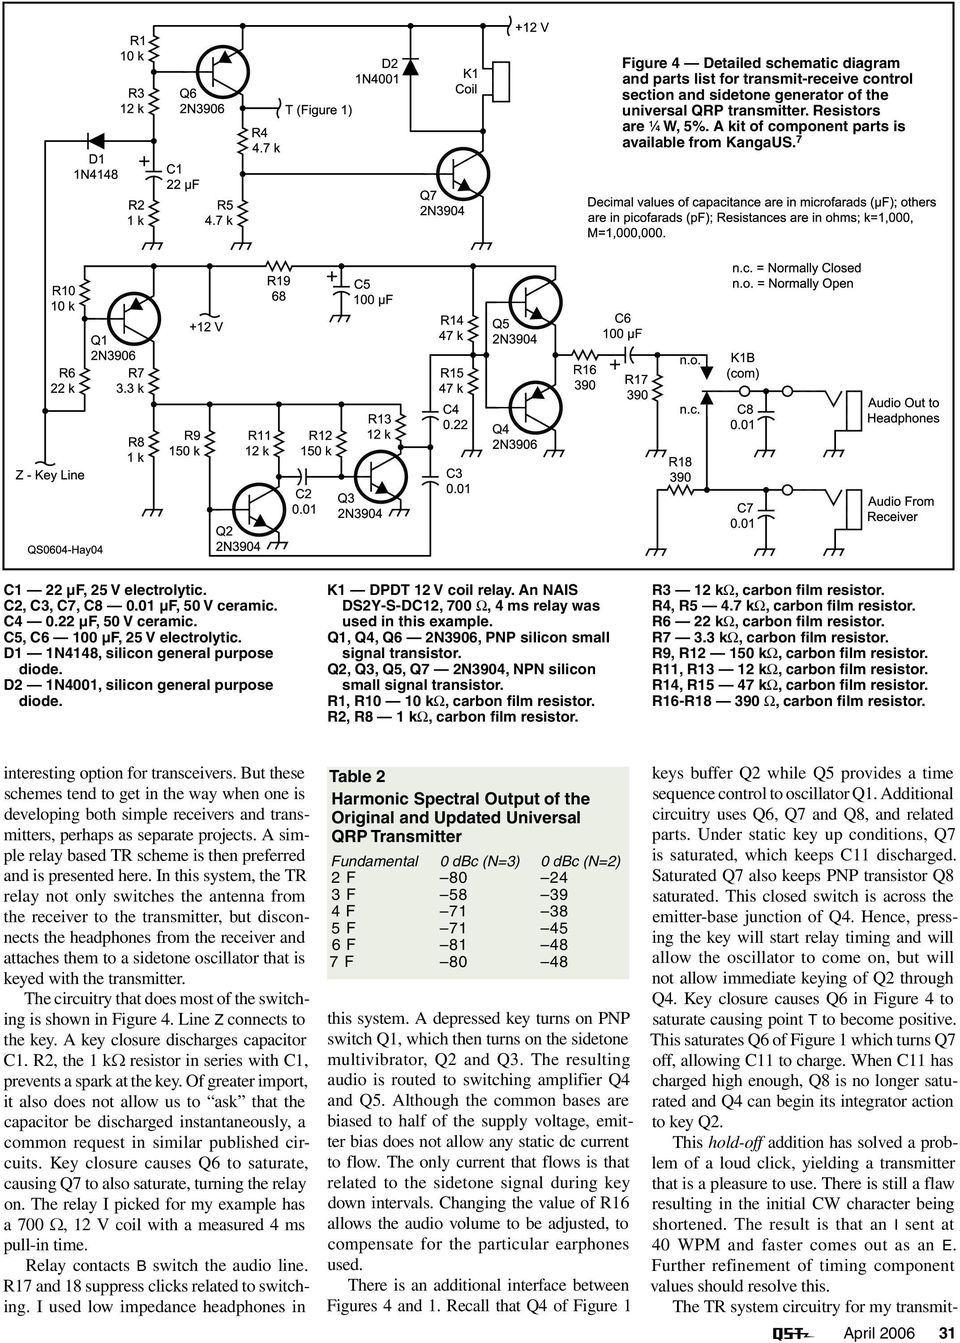 An Updated Universal Qrp Transmitter Pdf Simple Fm With 2n3904 D1 1n4148 Silicon General Purpose D2 1n4001 K1 Dpdt 12 V